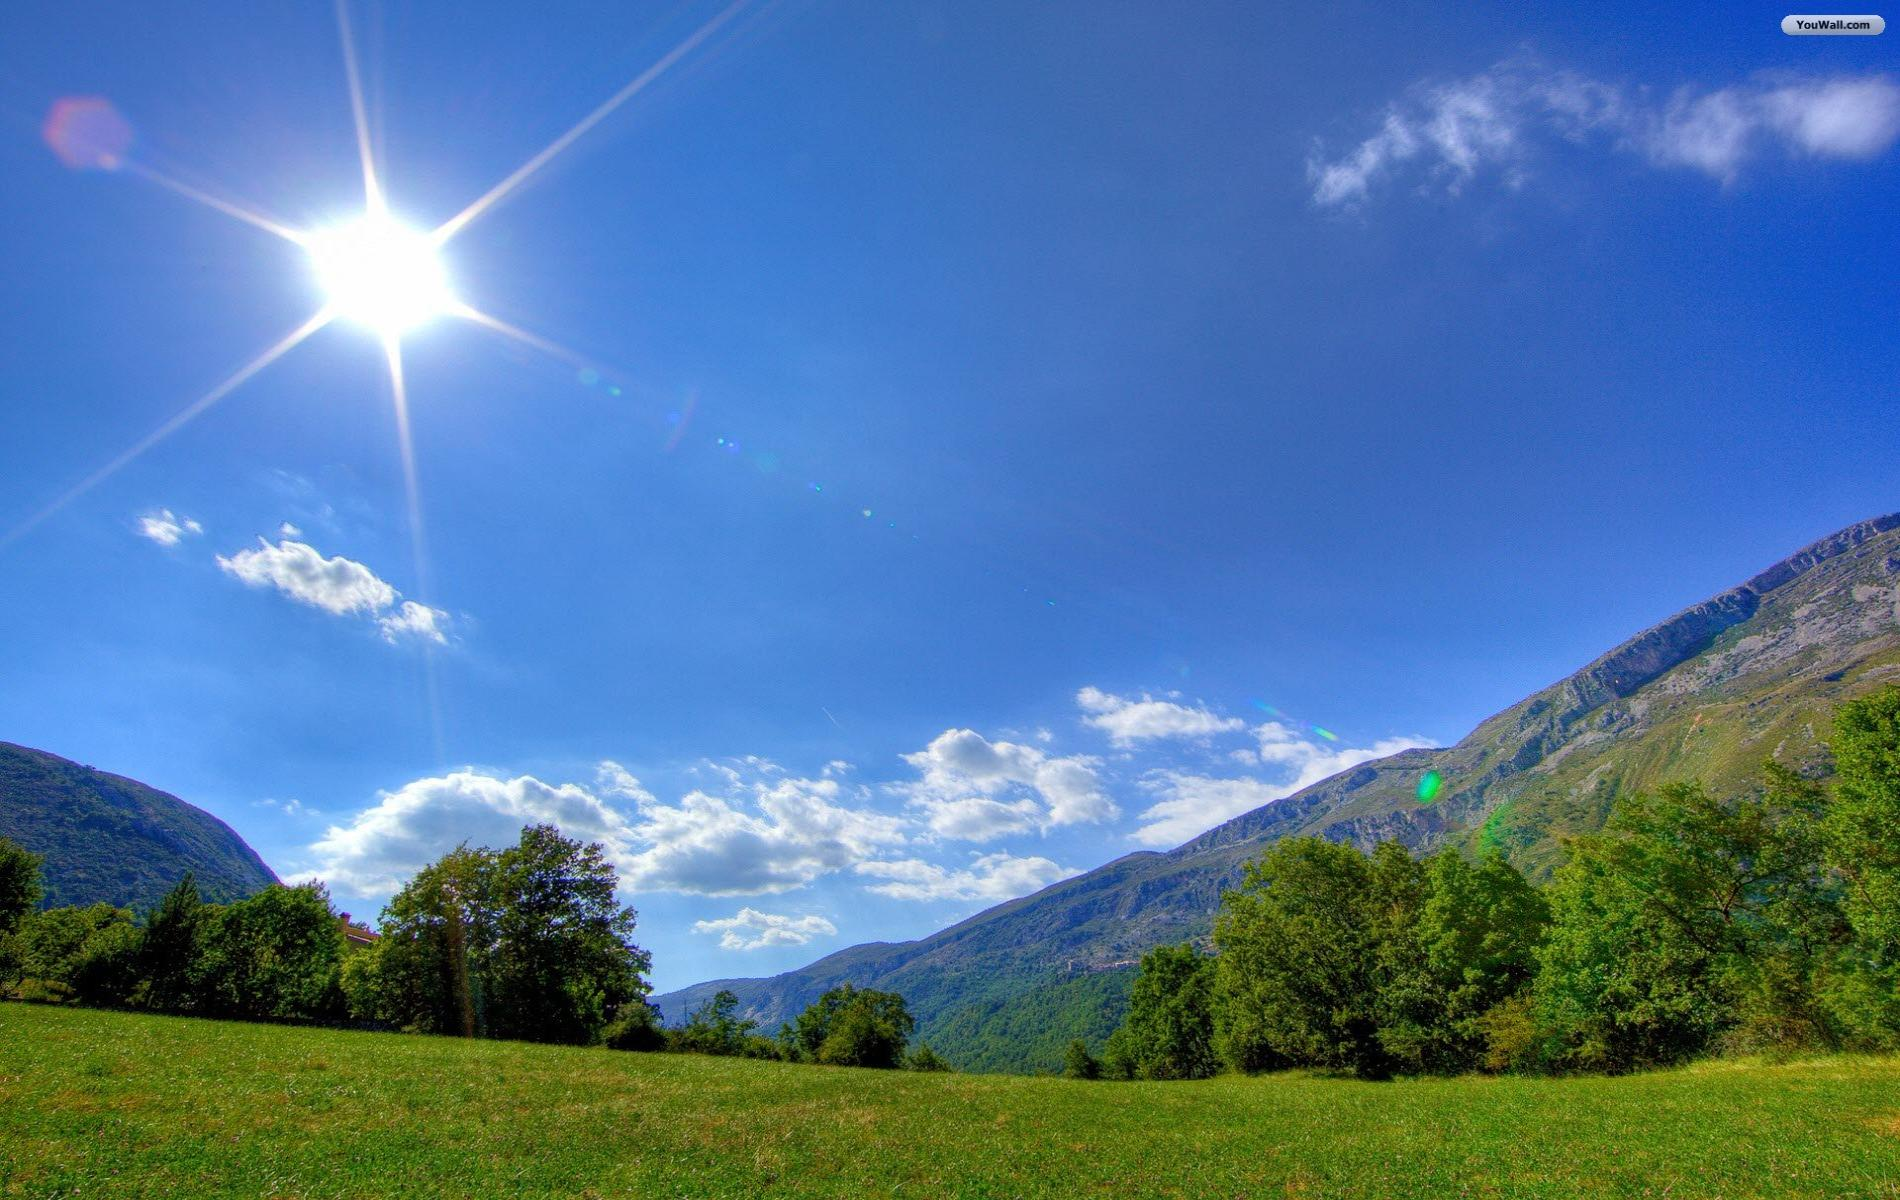 Sunny Day Wallpapers